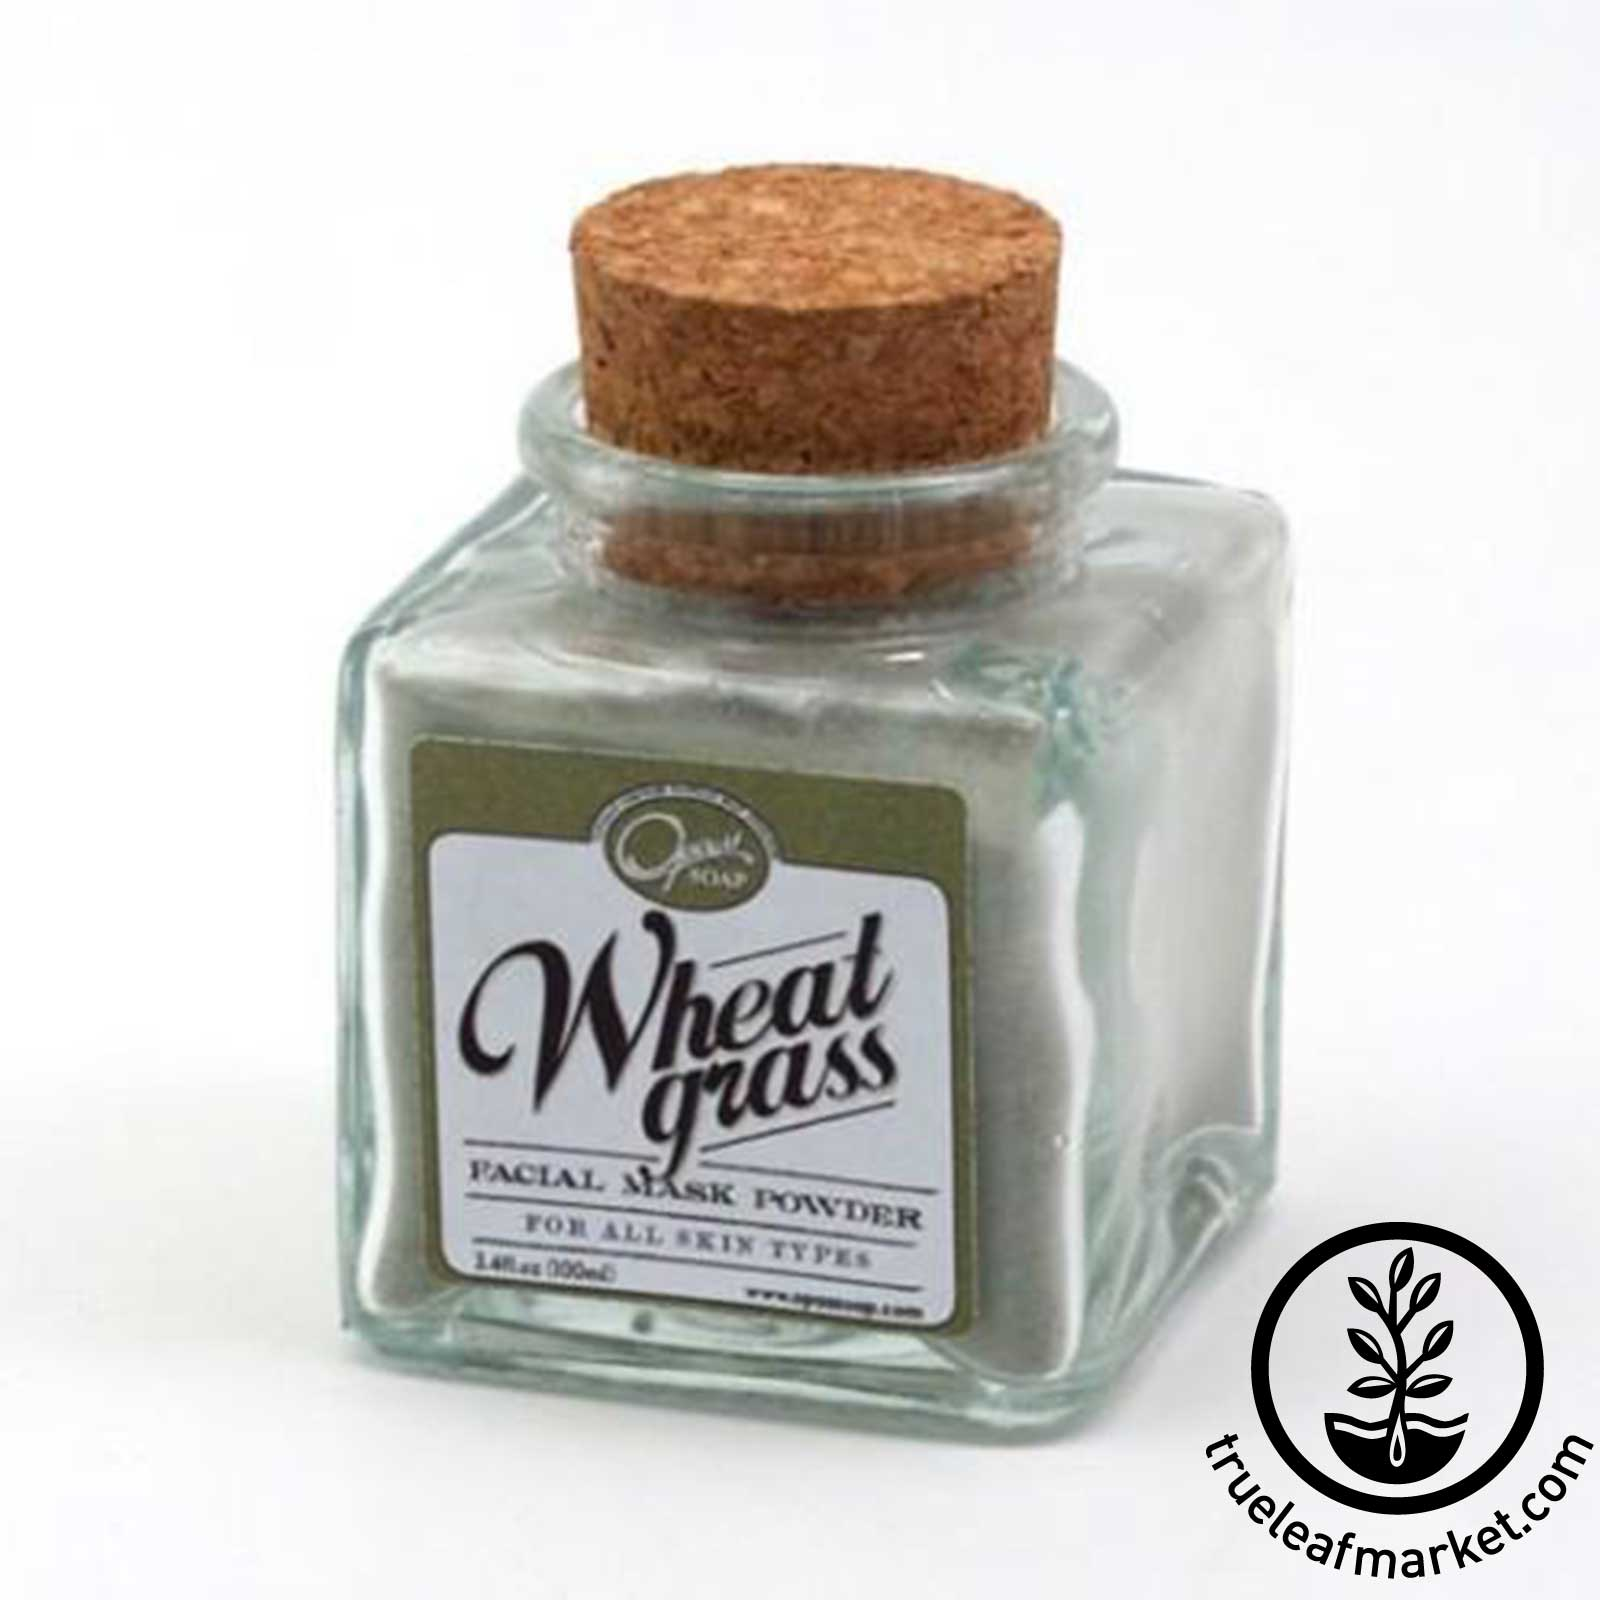 Wheatgrass Facial Mask Powder by Opas Soap